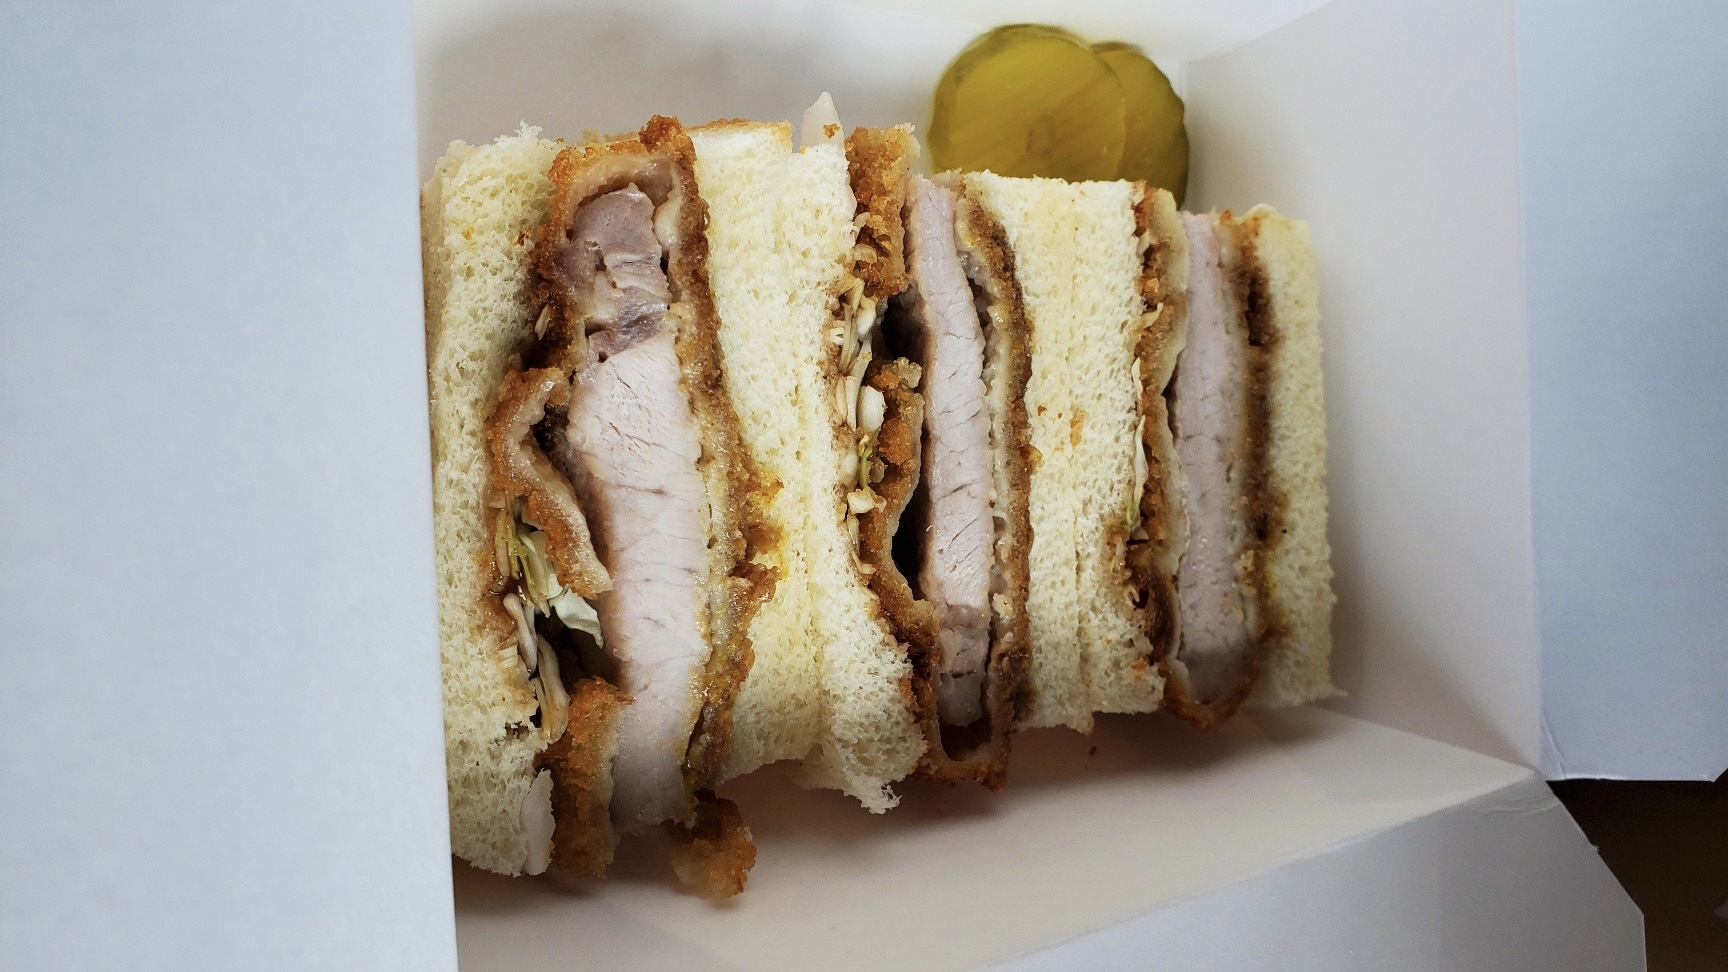 A picture of a sandwich, cut in half, with hunks of fried pork in the middle